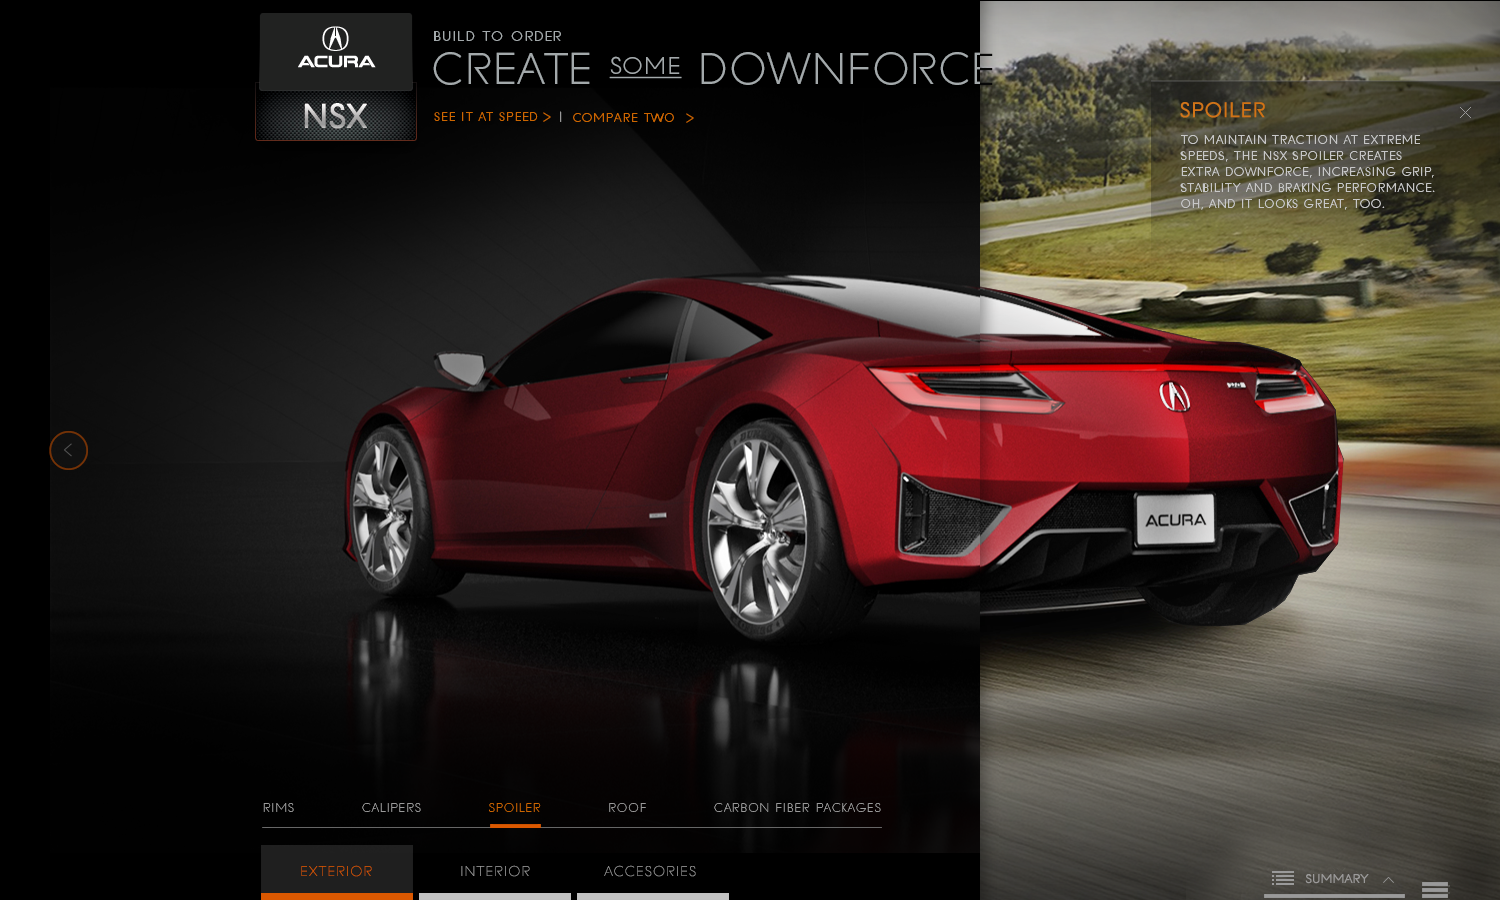 Acura_NSX_BTO_Concept_24.png